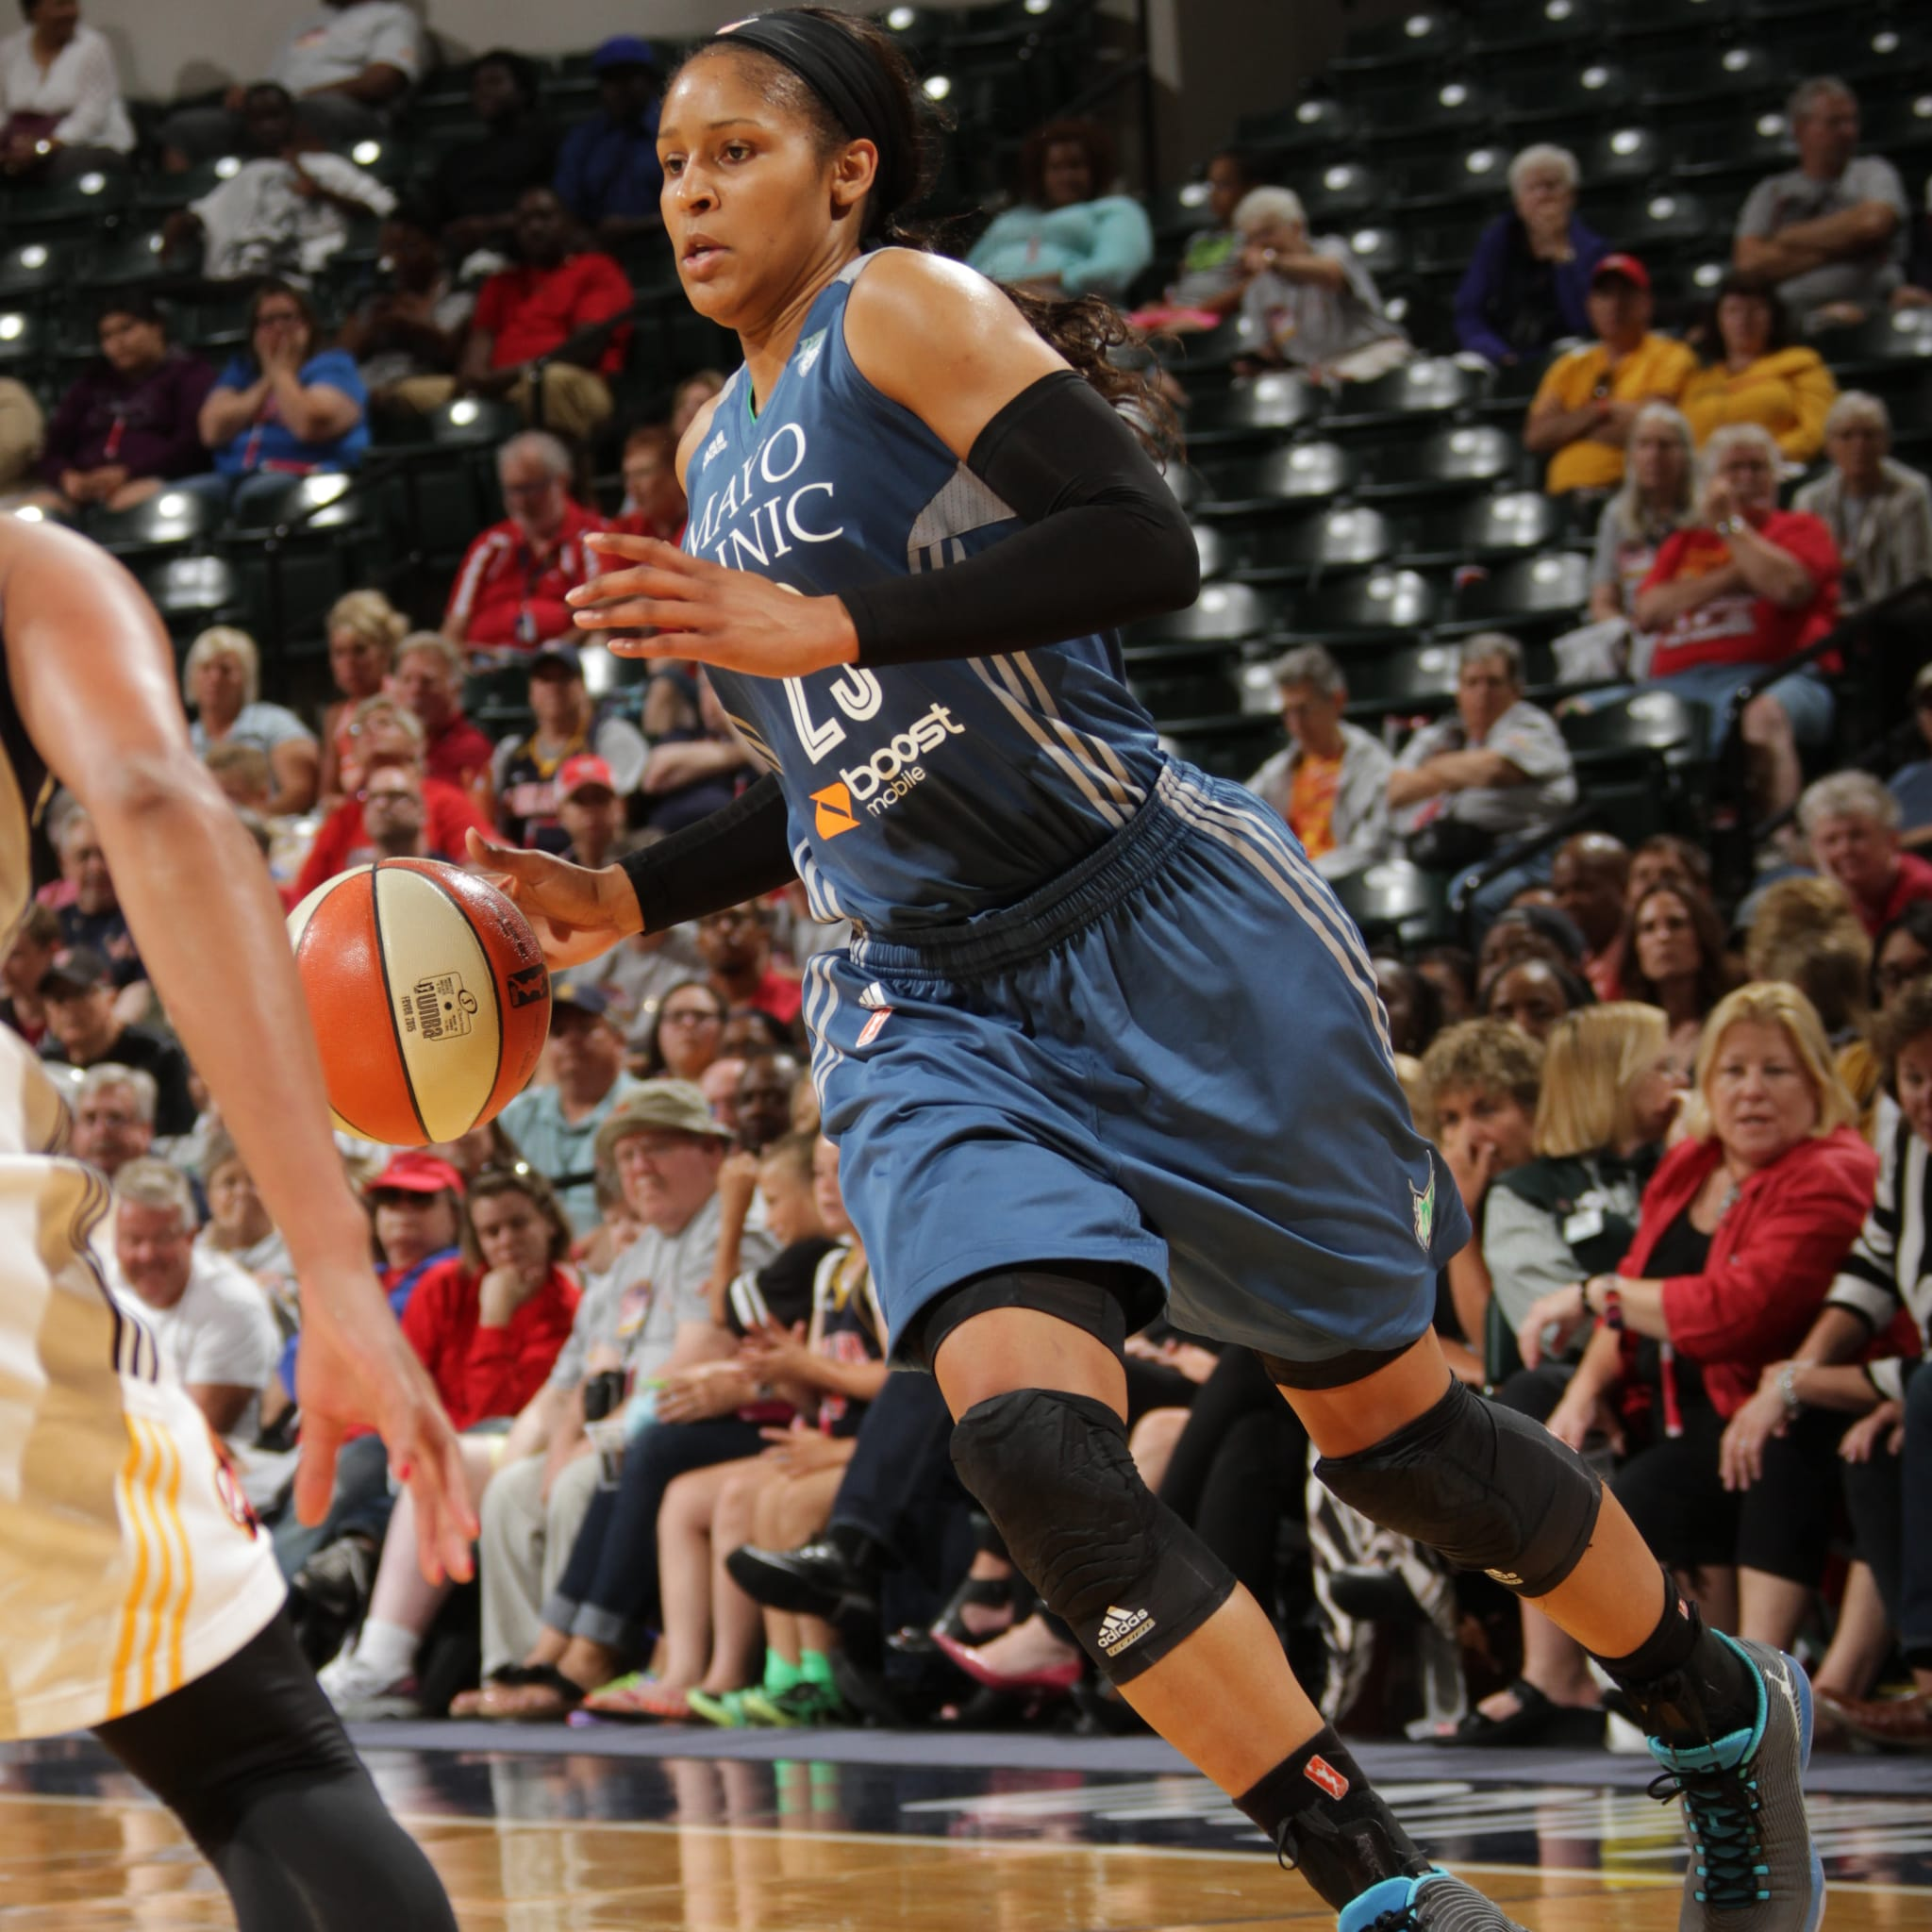 Despite shooting a fairweather 4-of-12 (33 percent) from the field, Lynx forward Maya Moore still scored 16 points on the night.